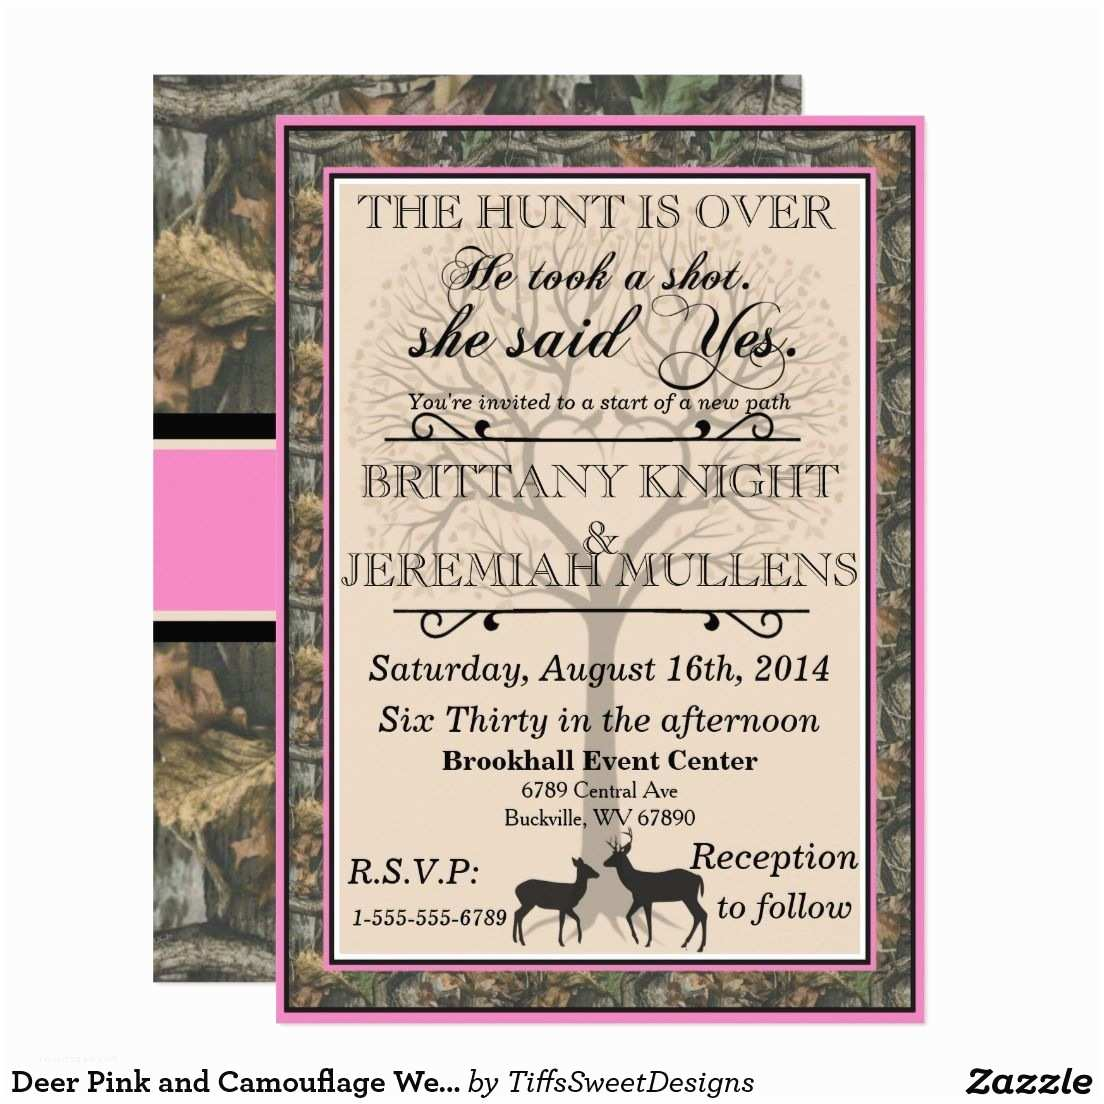 Camo Wedding Invitations Deer Pink and Camouflage Wedding Invitation